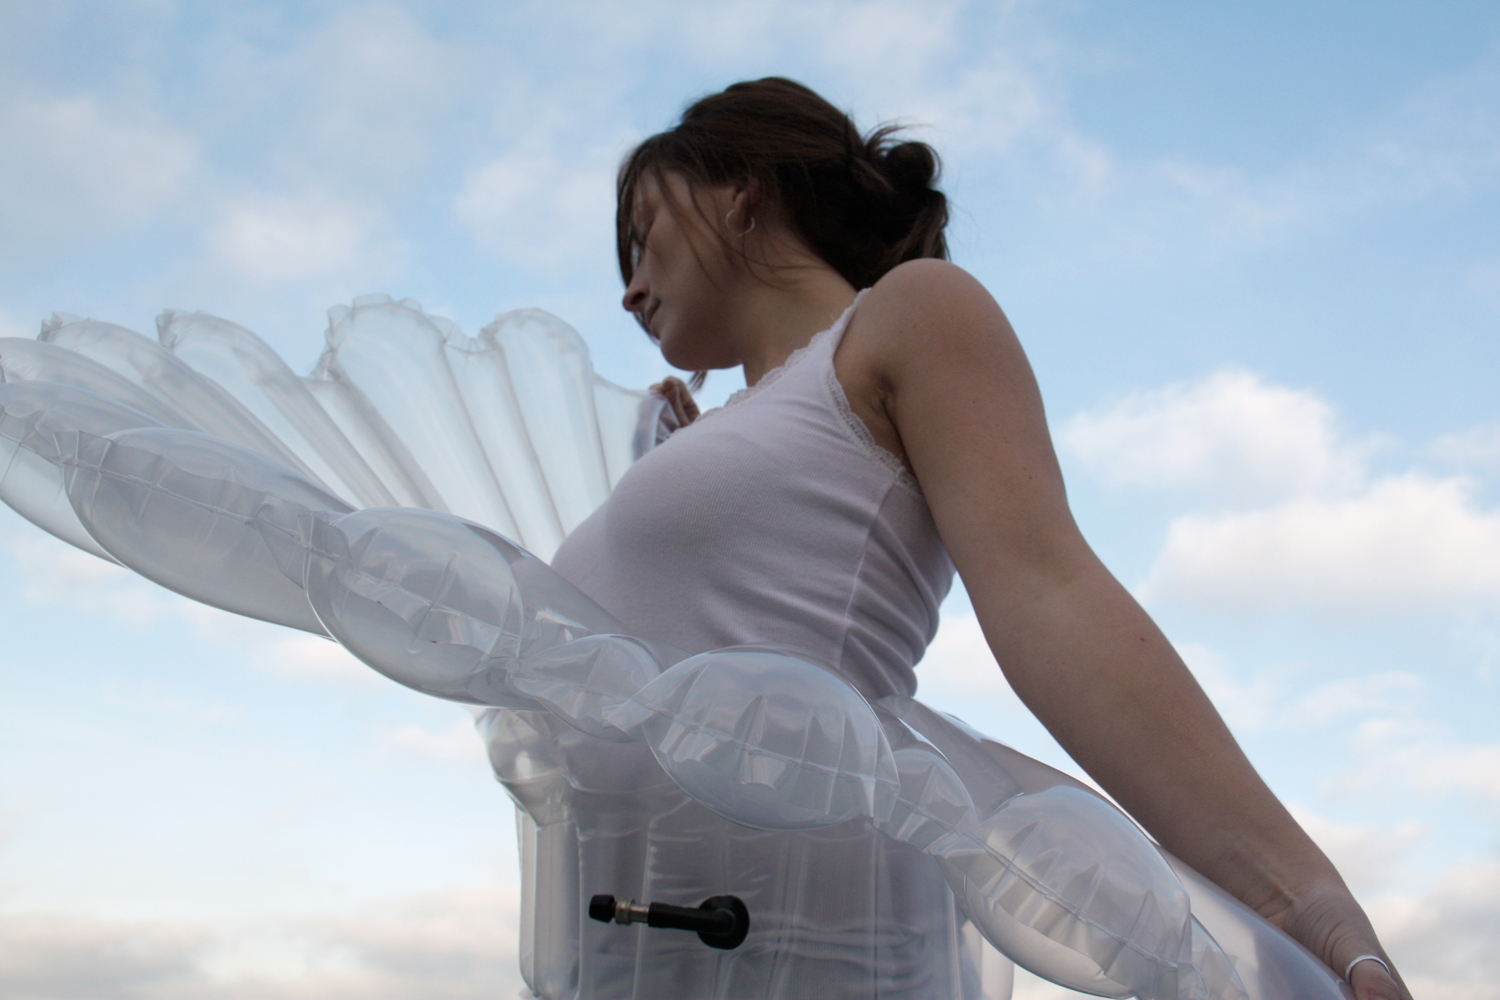 INFLATABLE FASHION - AN EXPERIMENT IN LIFE-PRESERVING CLOTHING